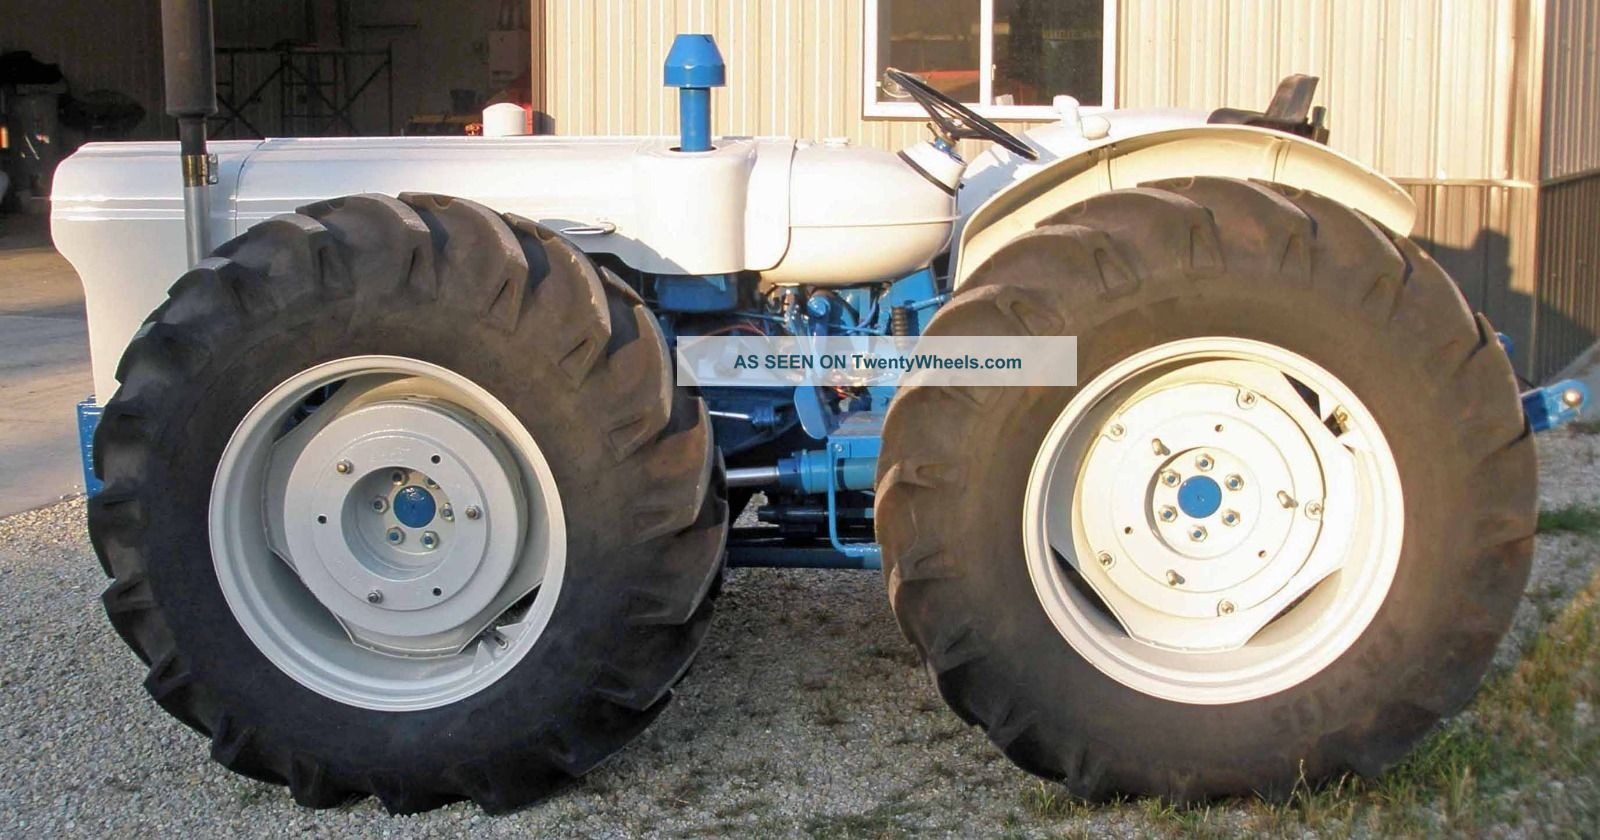 6 Wheel Drive Tractor : Rare ford county four wheel drive tractor completly